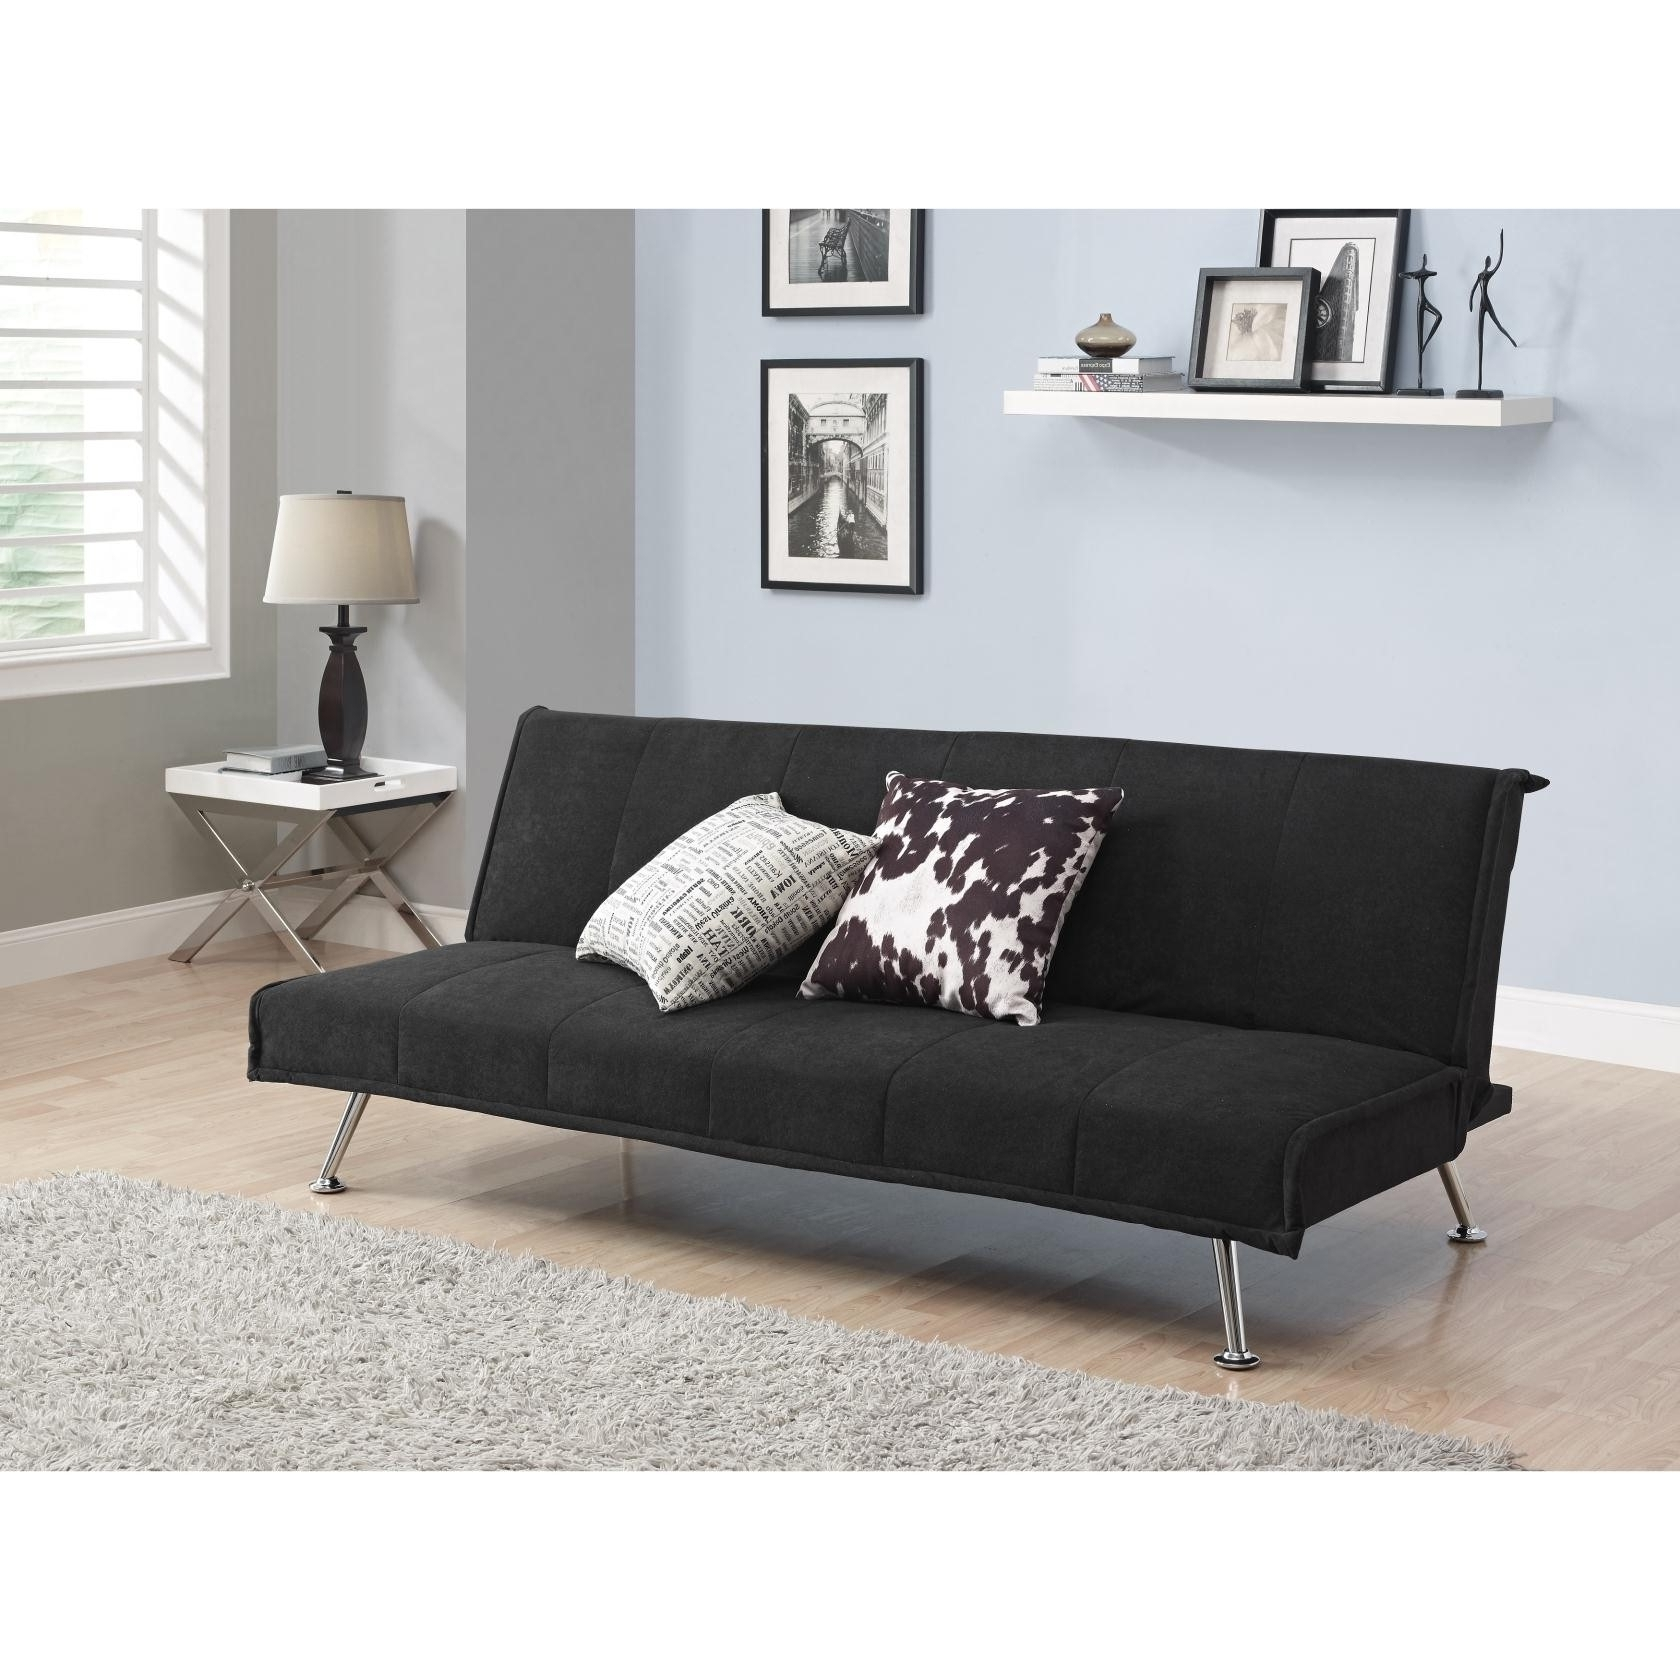 furniture inviting comfortable feel your living room with loveseats target sofa futon couch big lots coffee tables pull out loveseat sleeper futons beds parquet accent table small